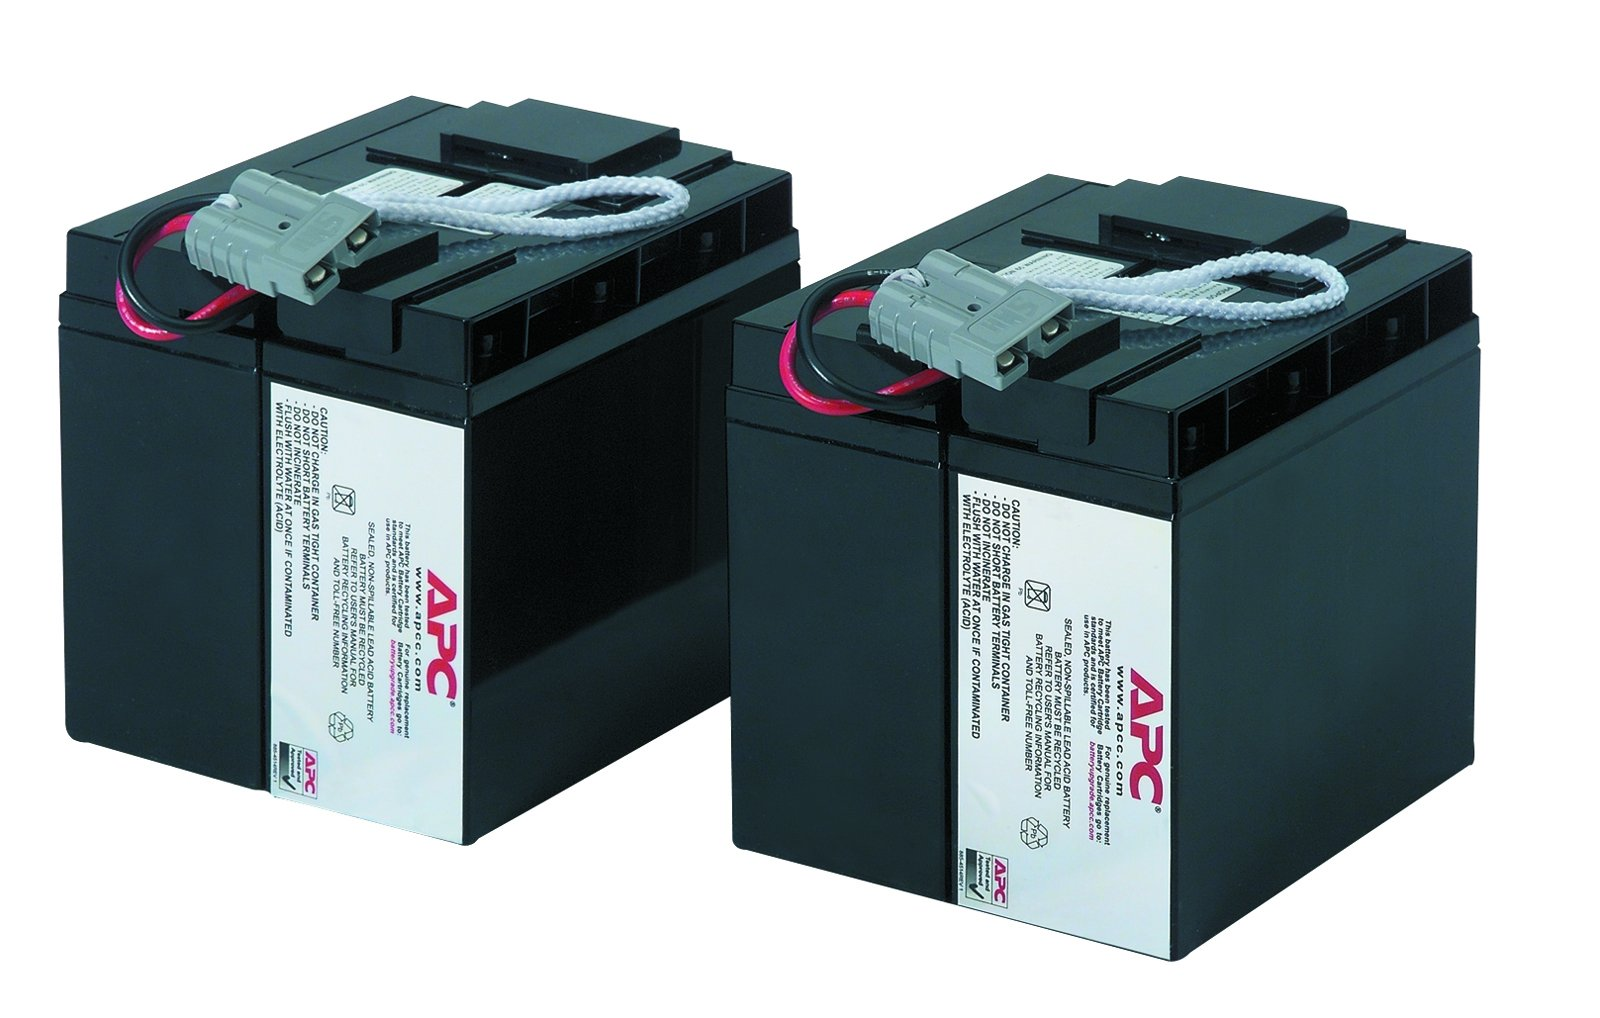 APC Smart-UPS 3000VA 120V SU3000NET Compatible Replacement Battery Pack by UPSBatteryCenter